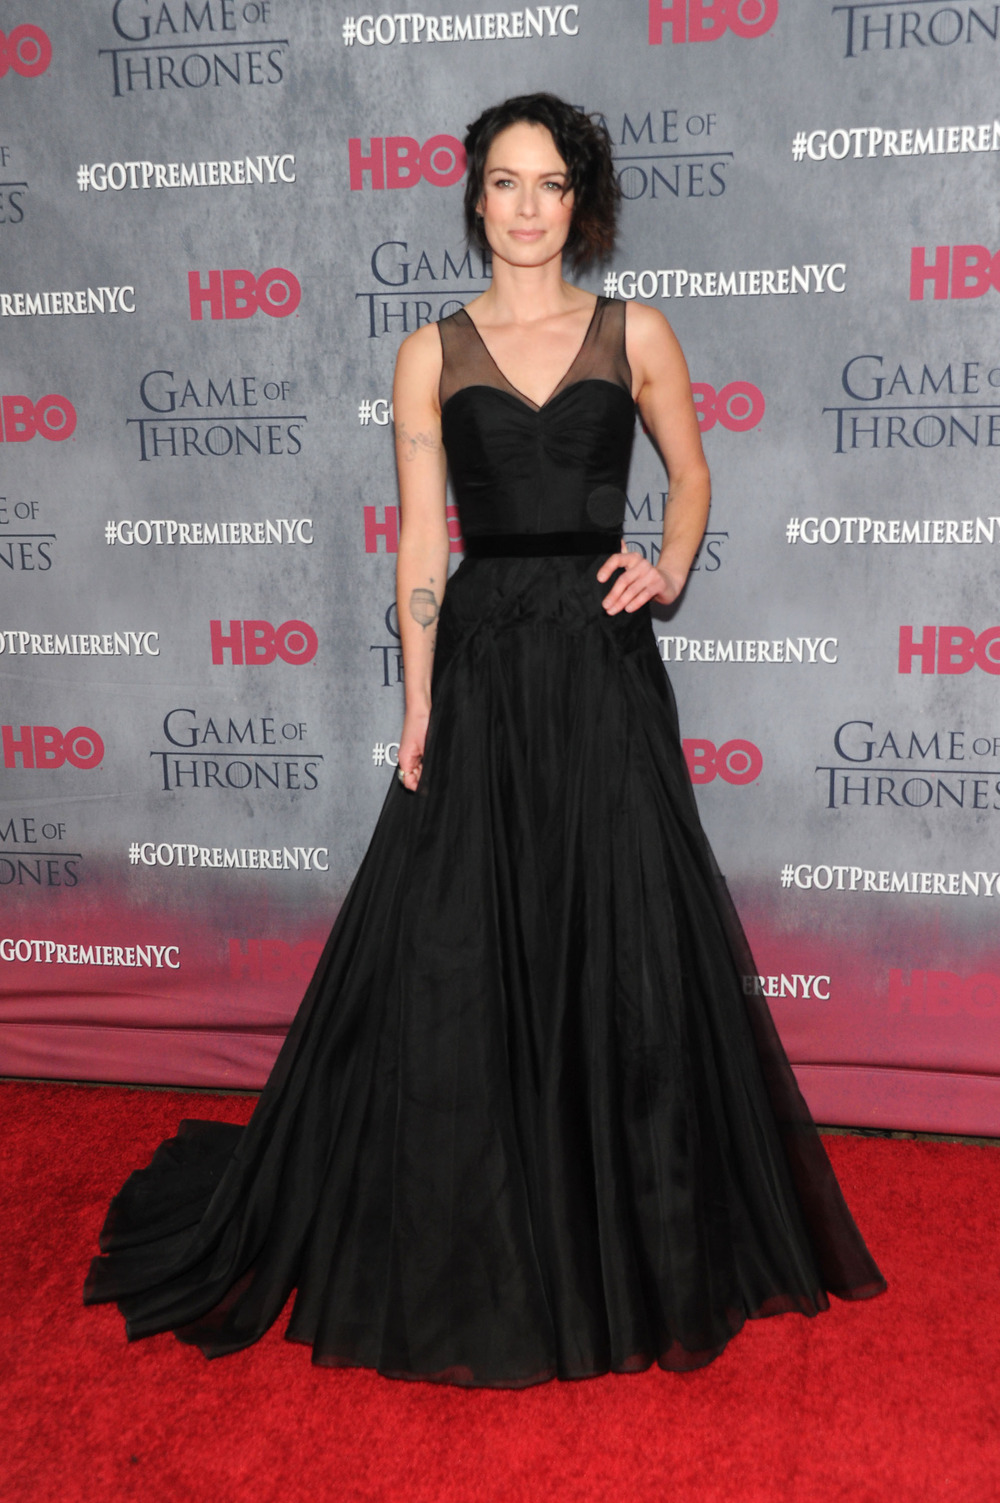 Game of Thrones Star Lena Headey Scores Big New Role!